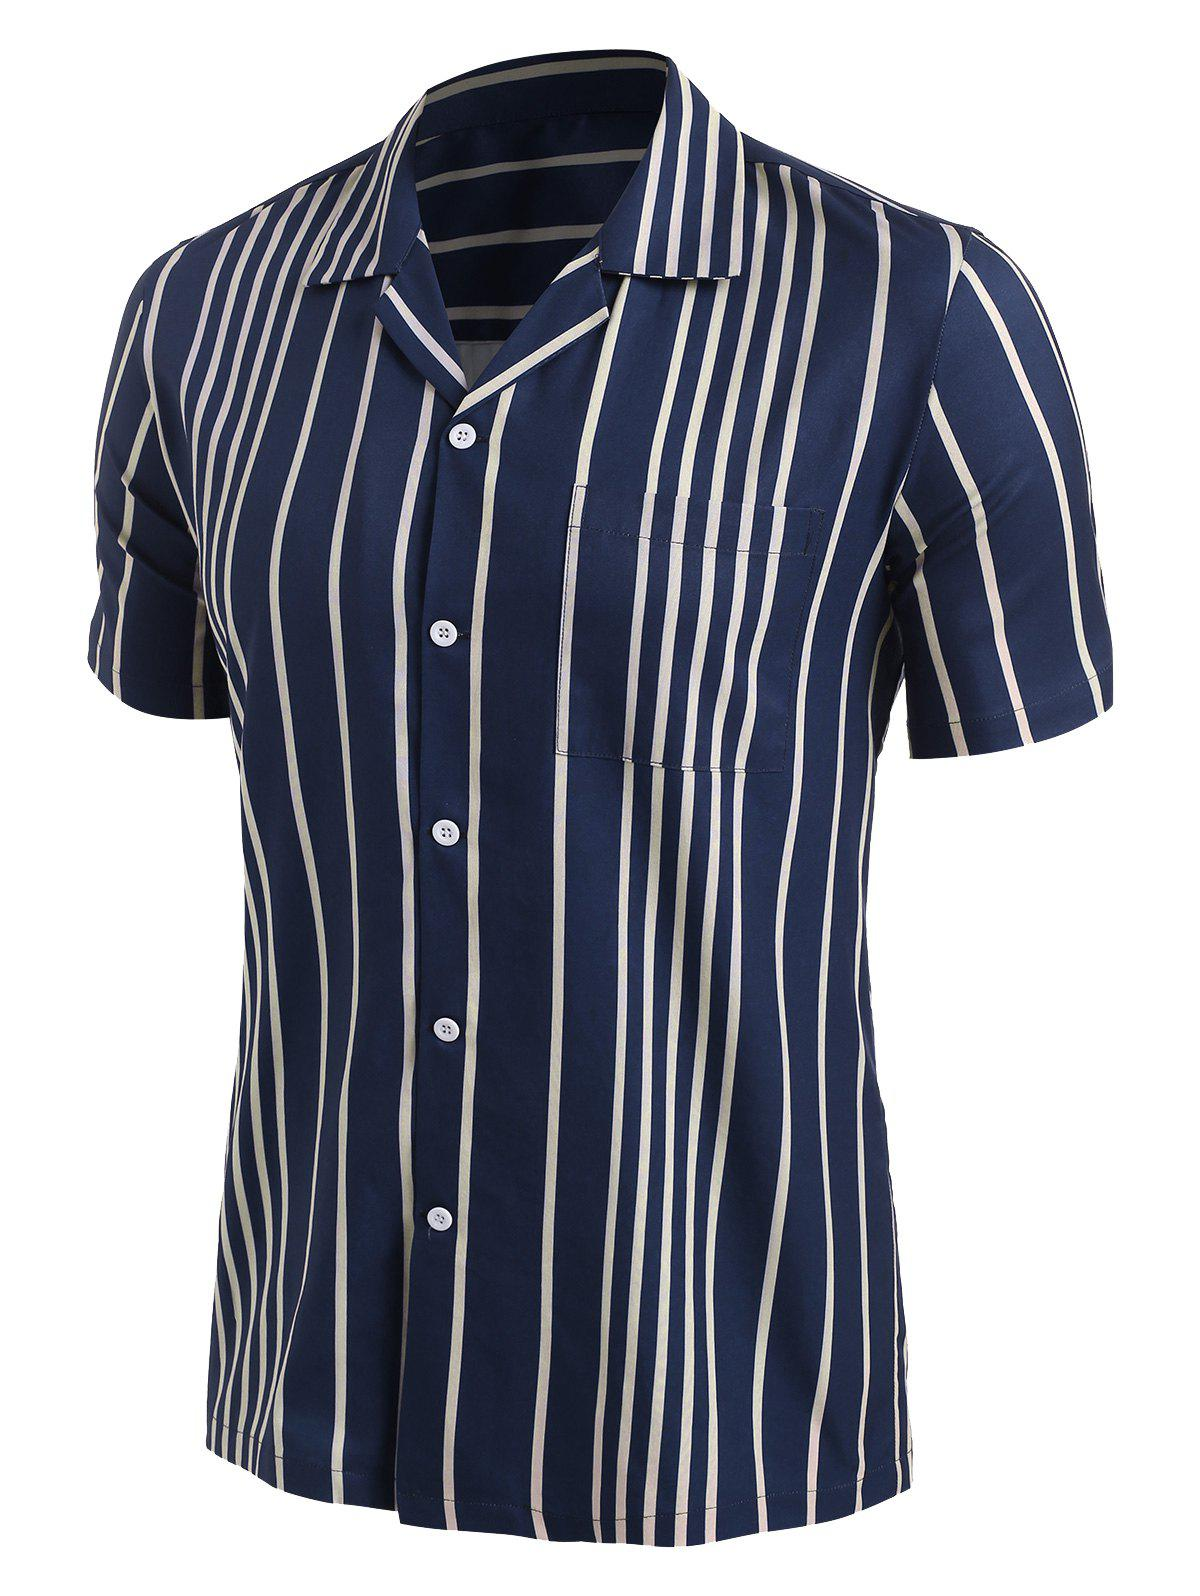 Button Up Contrast Stripes Shirt - DEEP BLUE XL